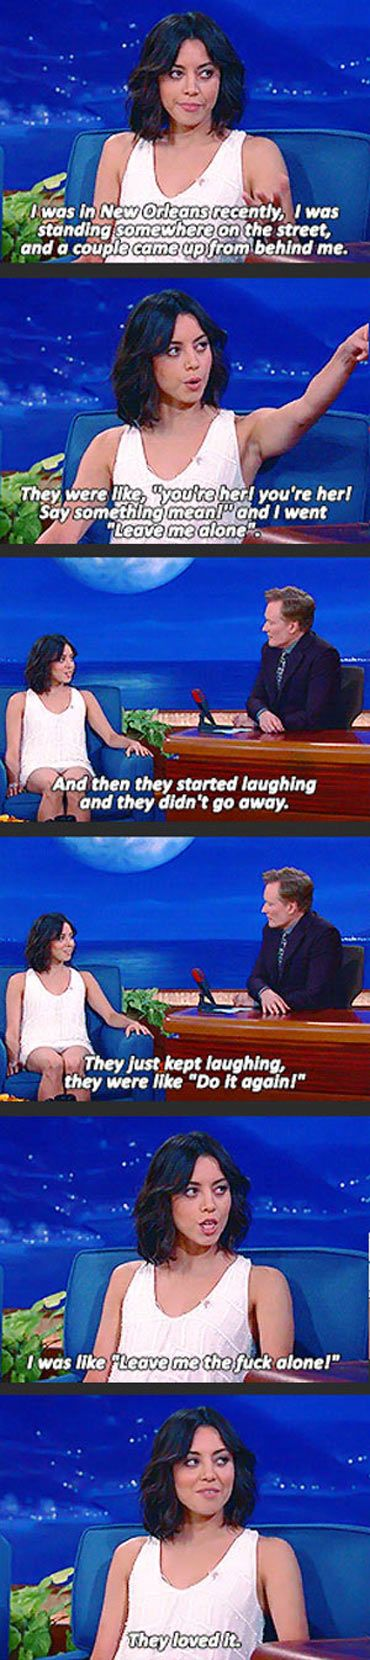 Reasons why I strongly relate to Aubrey Plaza